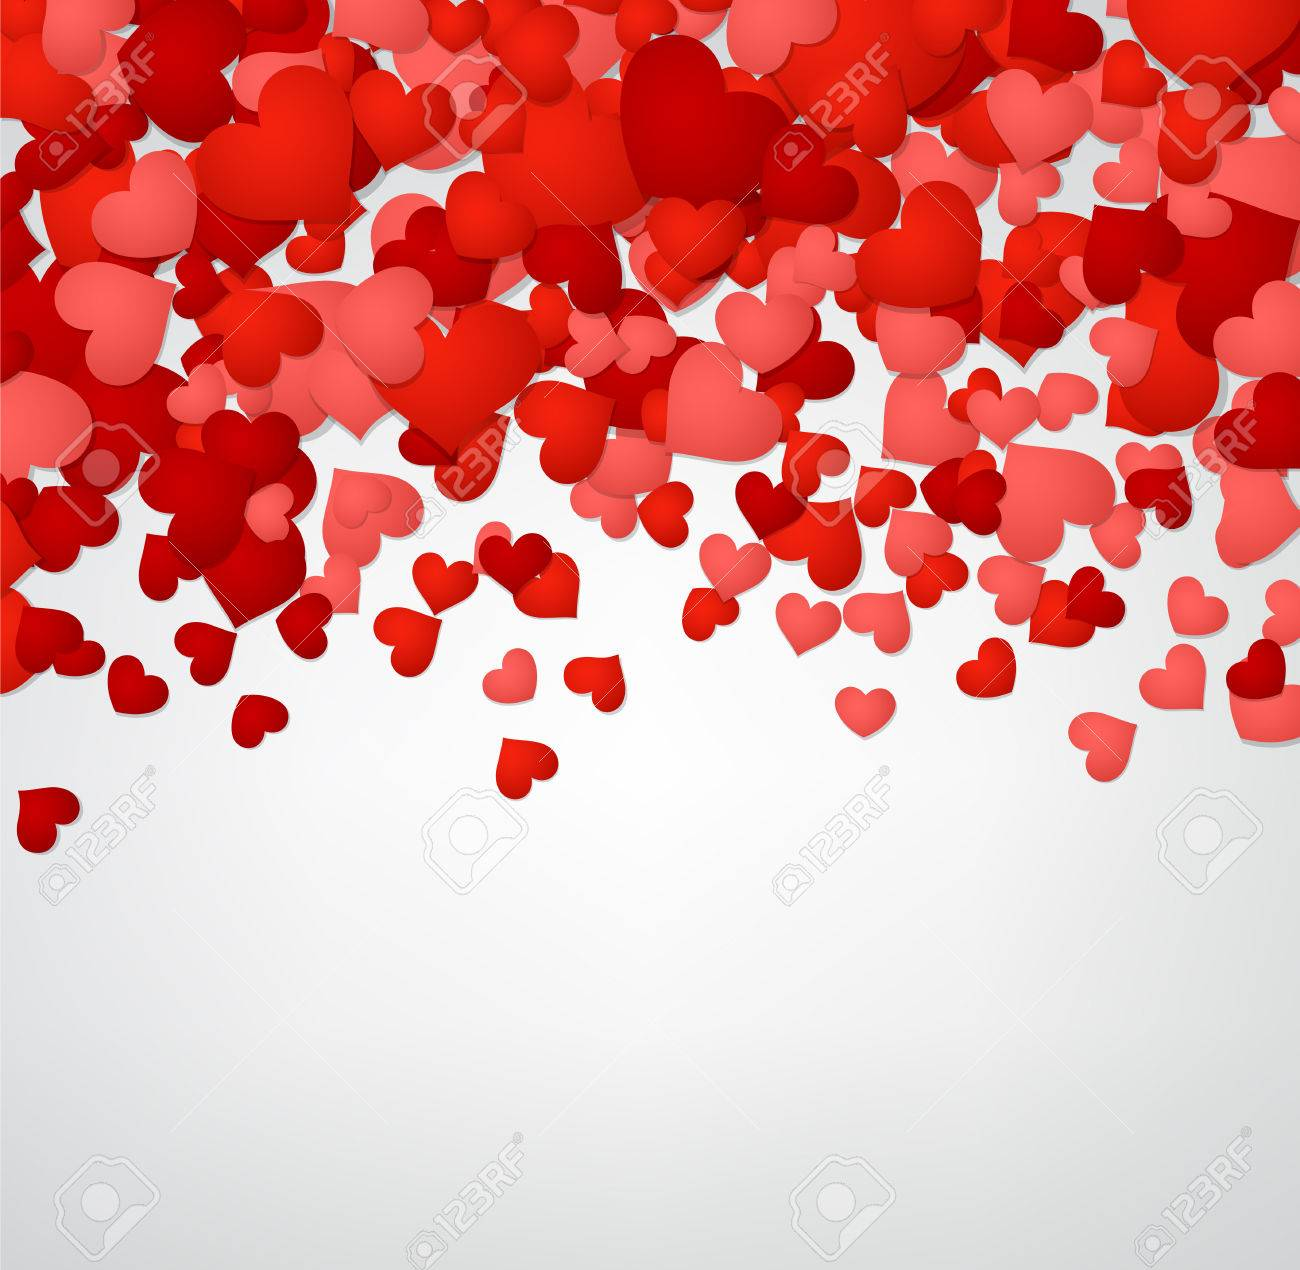 Romantic Valentine Background With Red Hearts. Vector Illustration. Stock  Vector   50638716